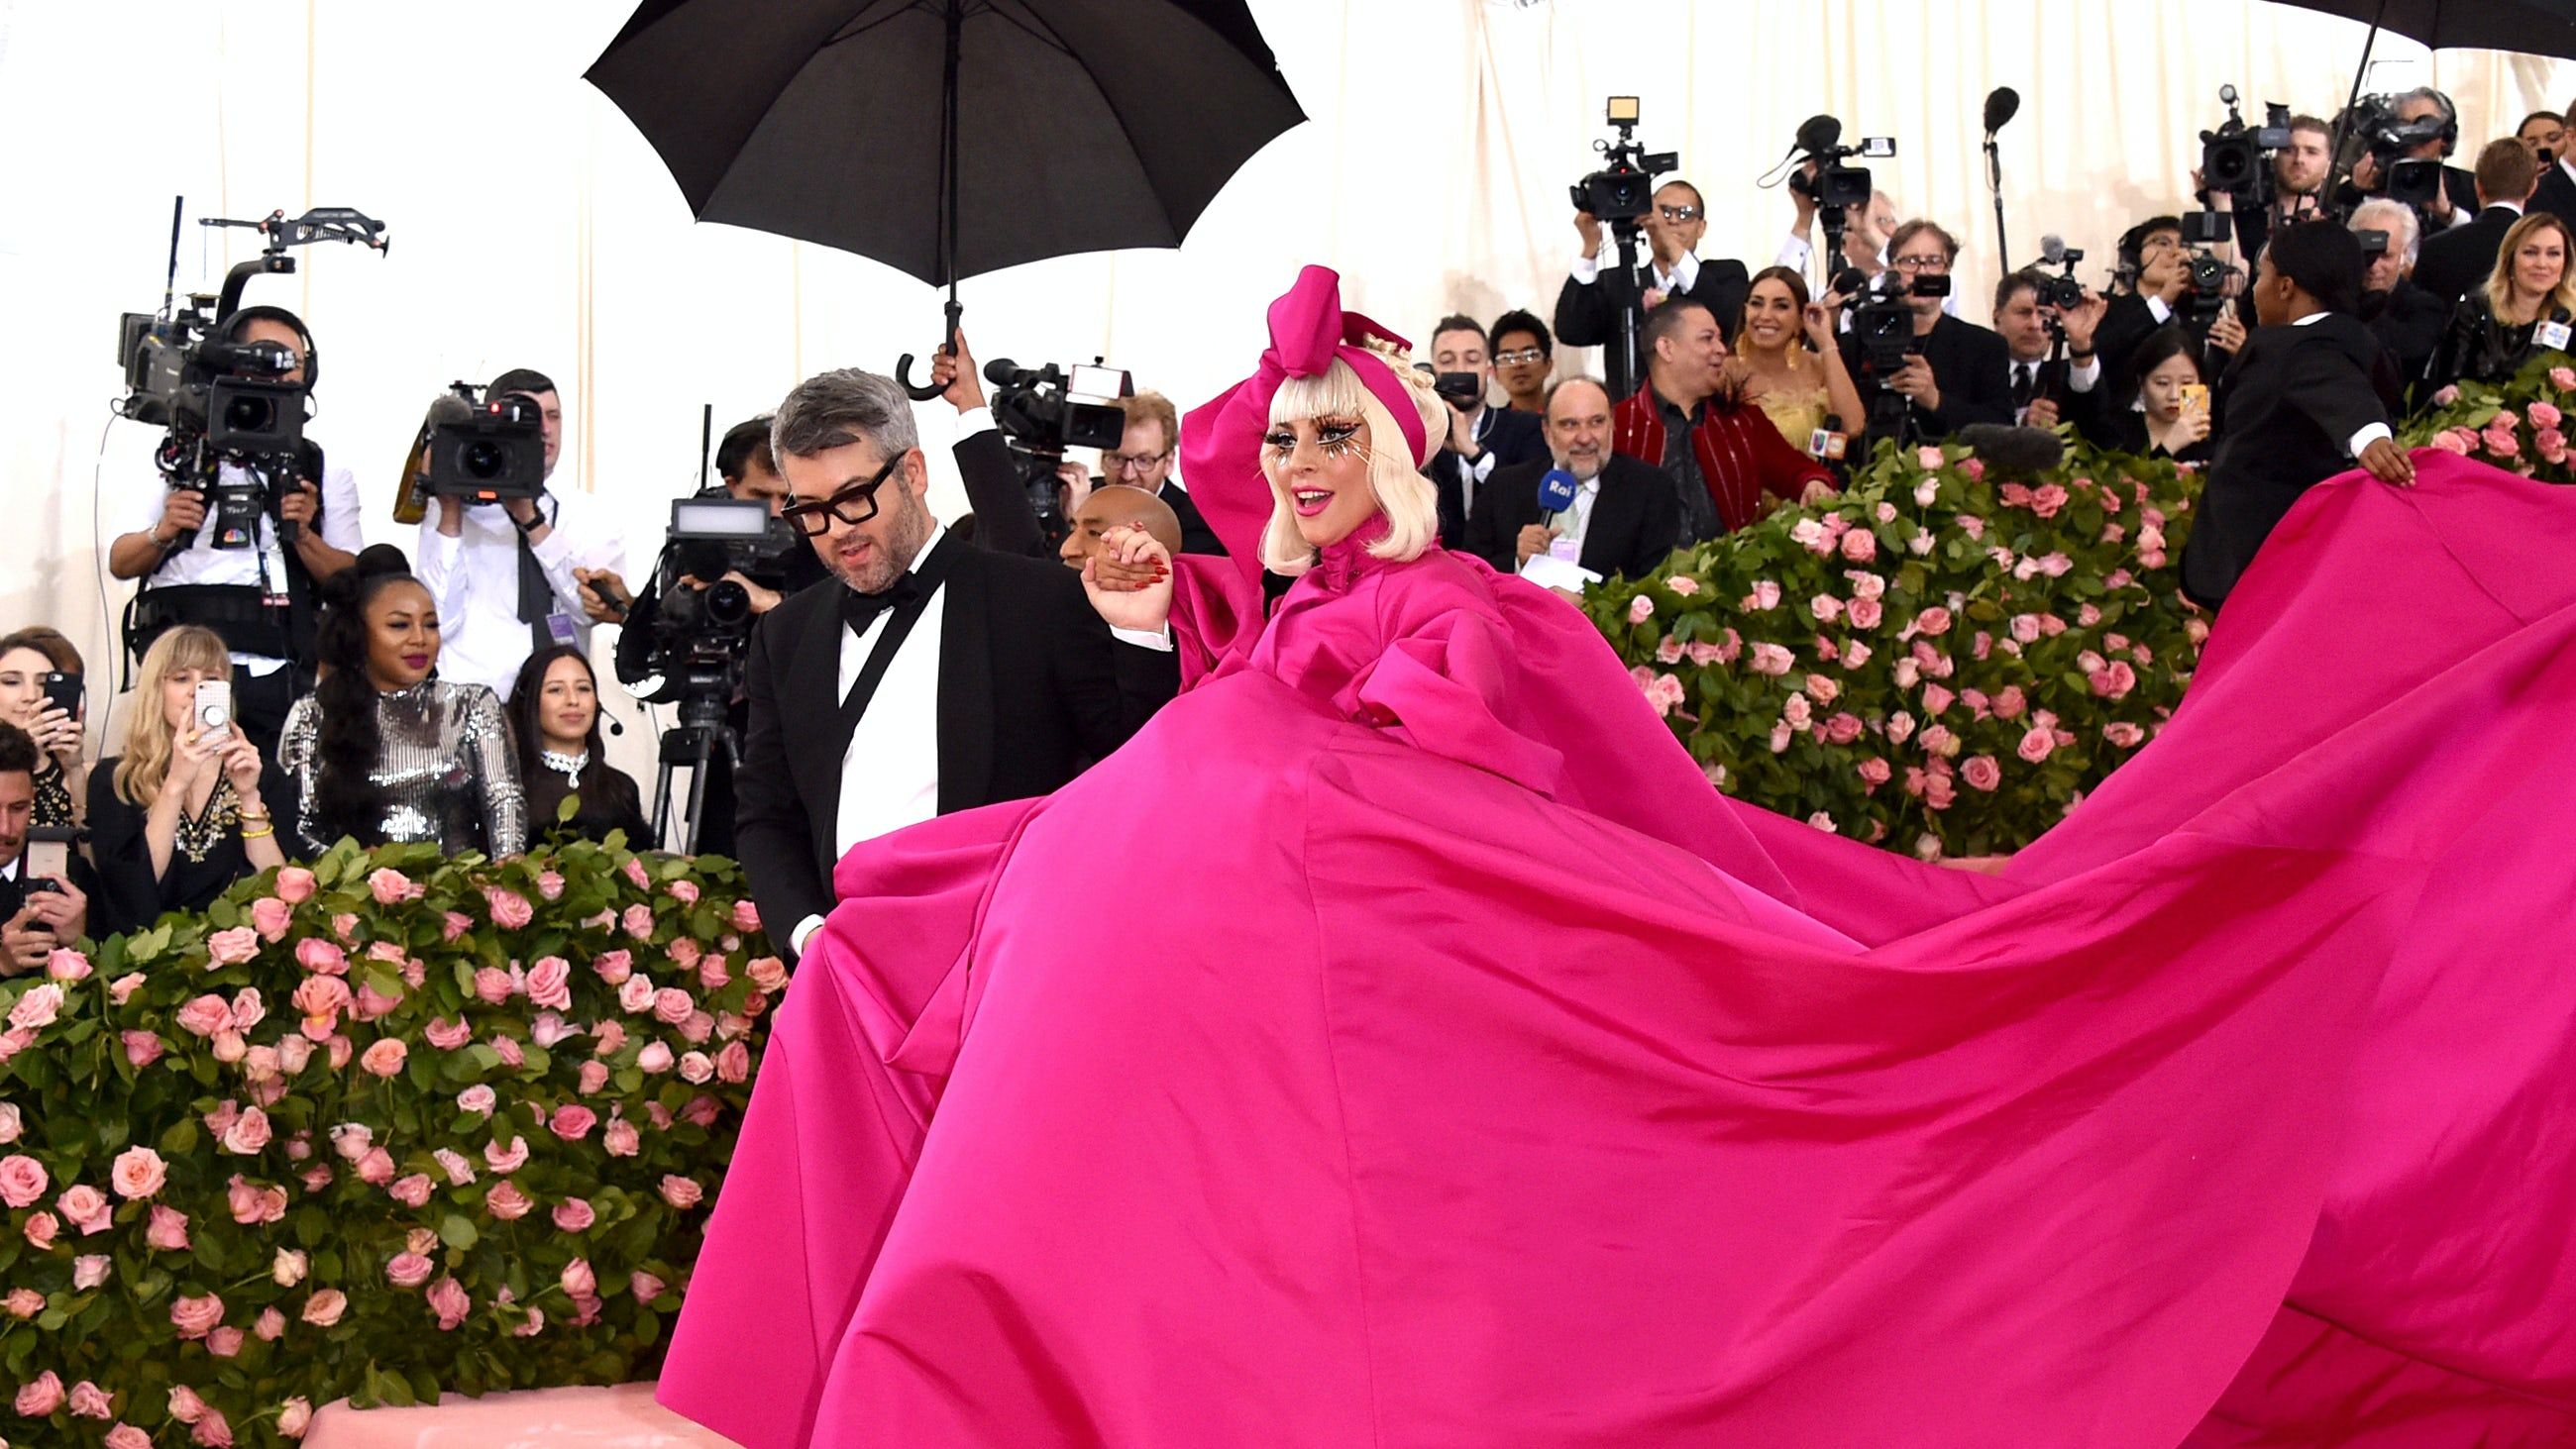 Brandon Maxwell and Lady Gaga at the Met Gala | Source: John Shearer/Getty Images for THR